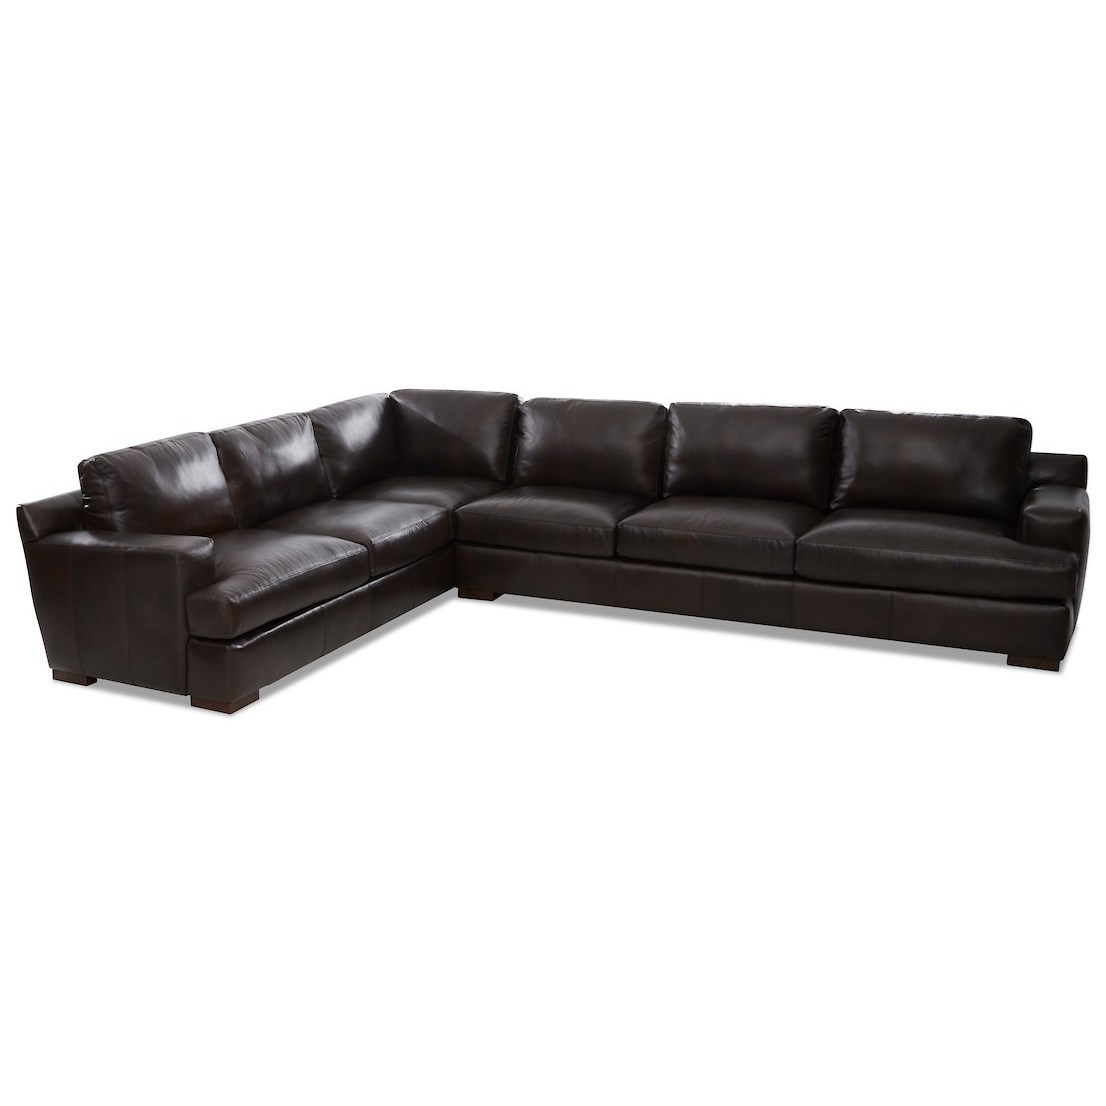 Lyon 5-Seat Sectional Sofa w/ RAF Sofa by Klaussner at Northeast Factory Direct